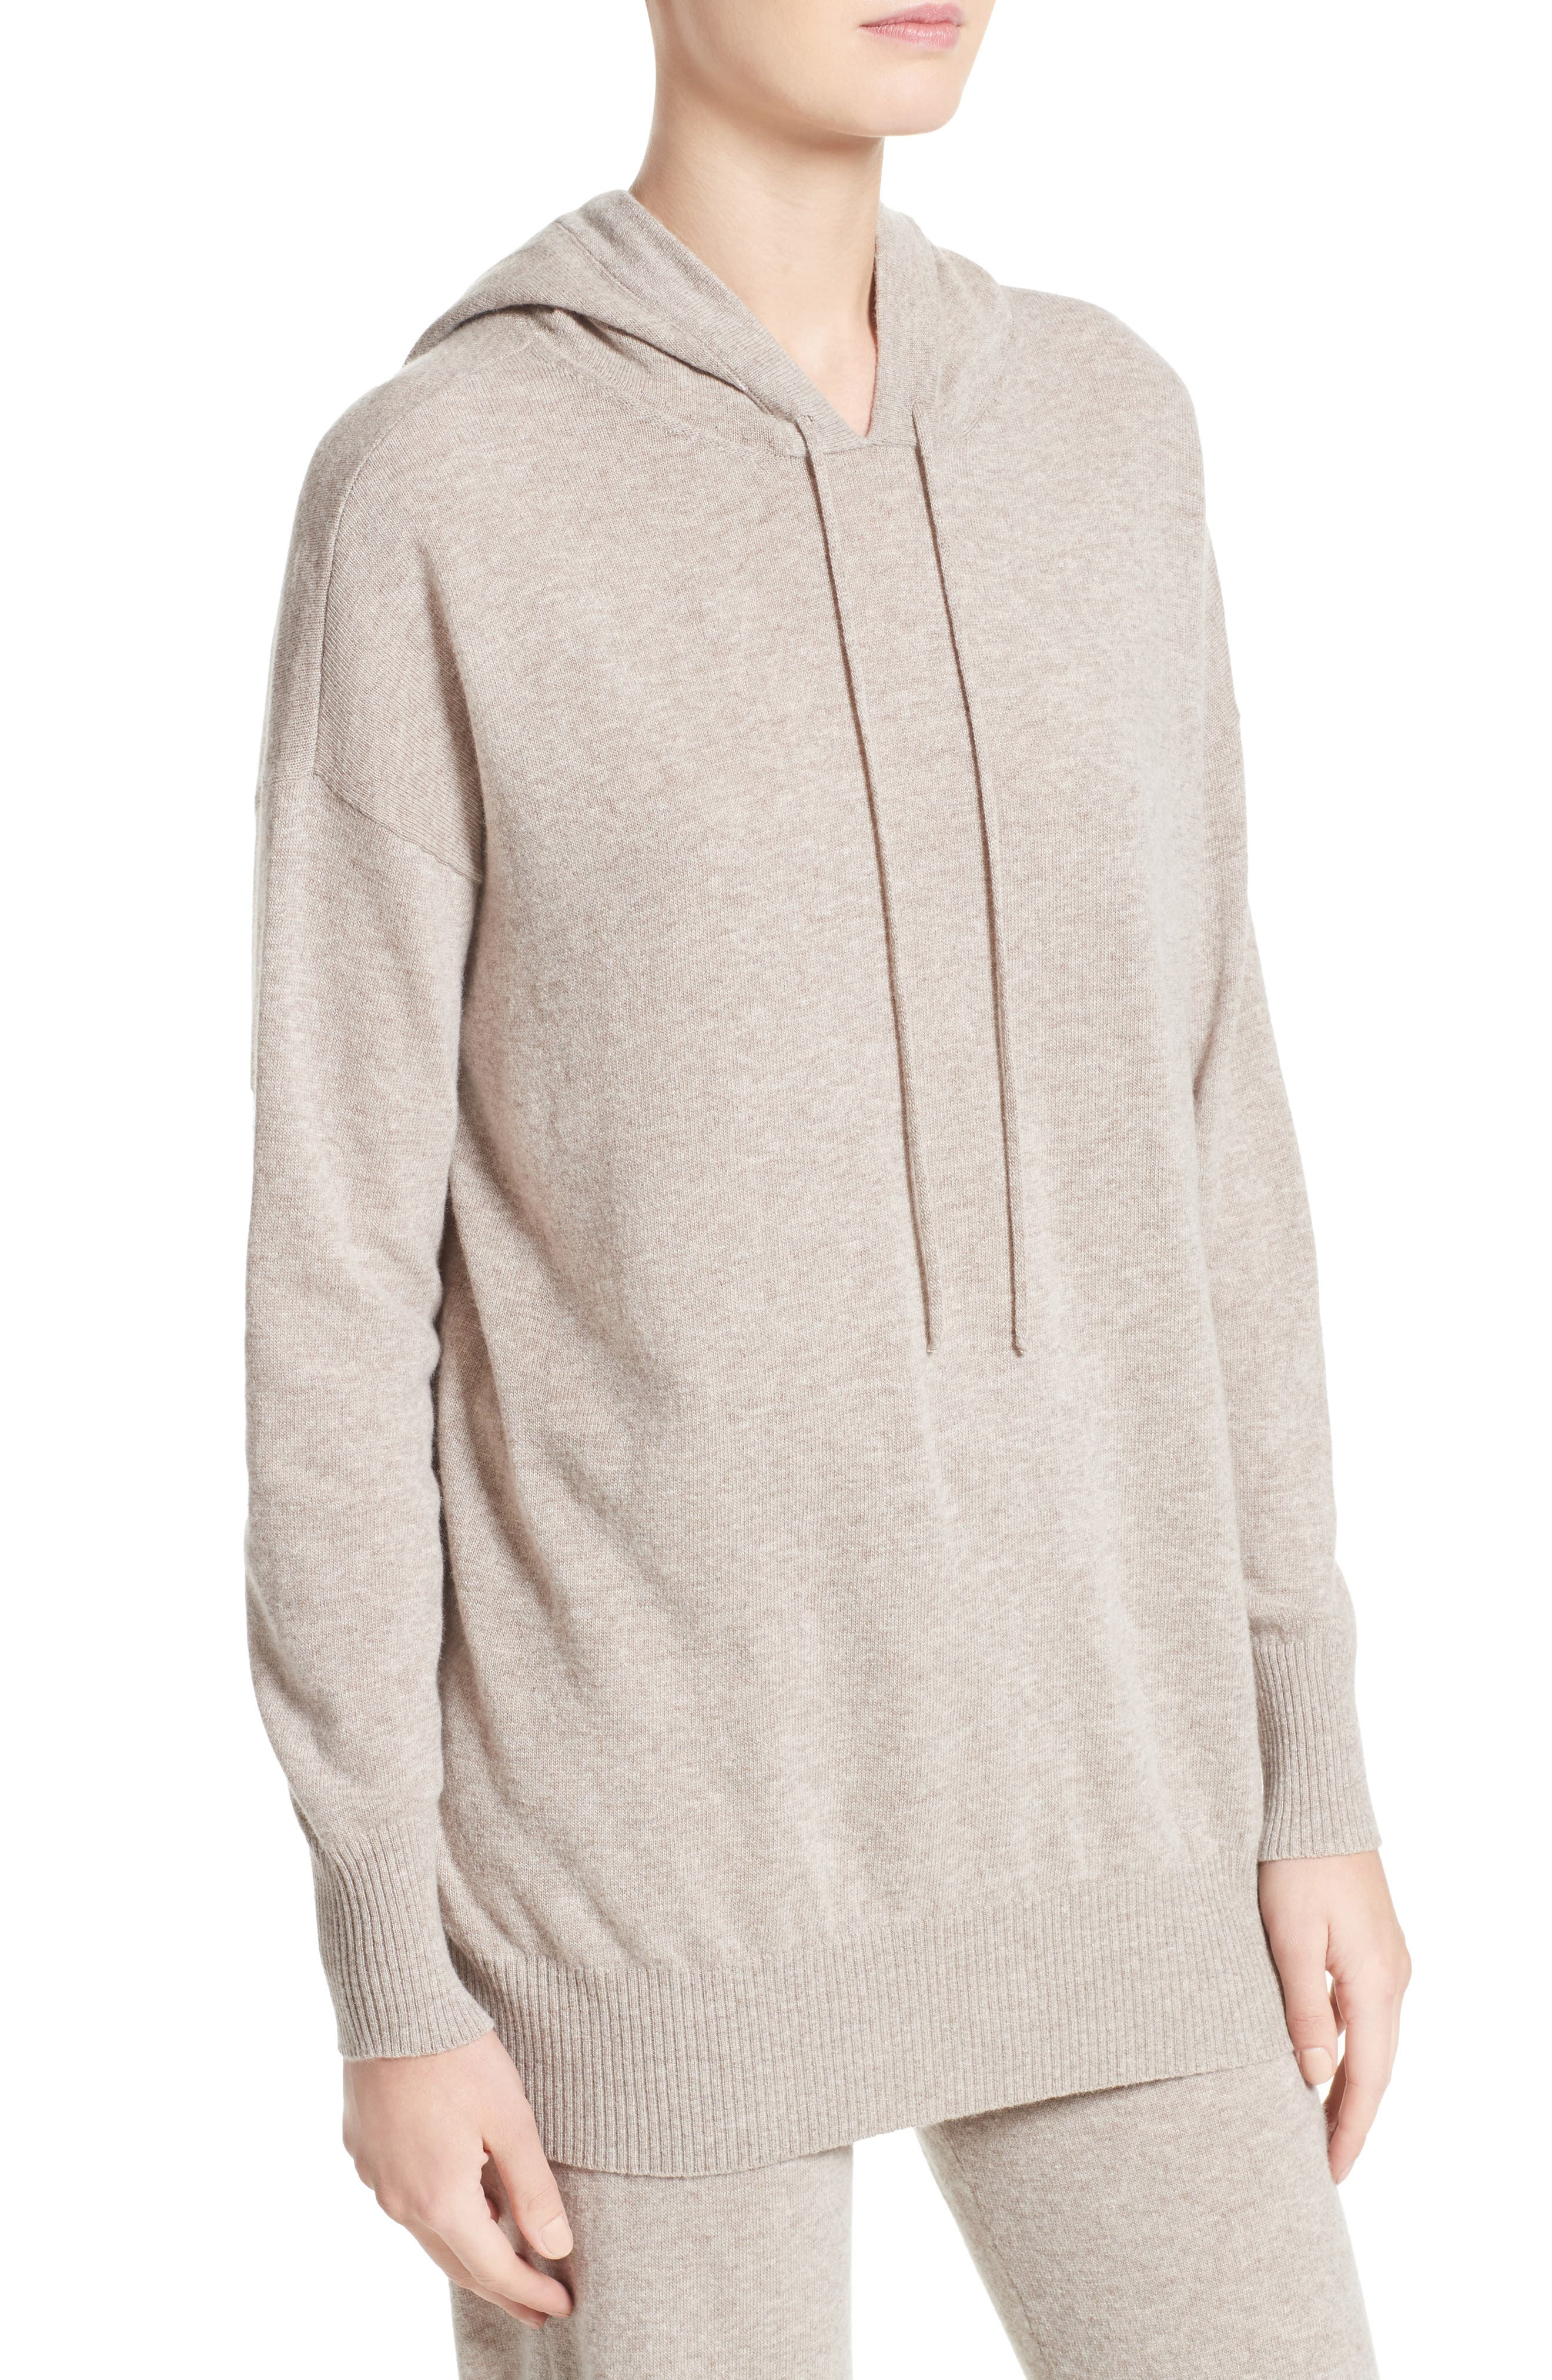 Nitra Wool & Cashmere Hooded Sweater,                             Alternate thumbnail 4, color,                             236